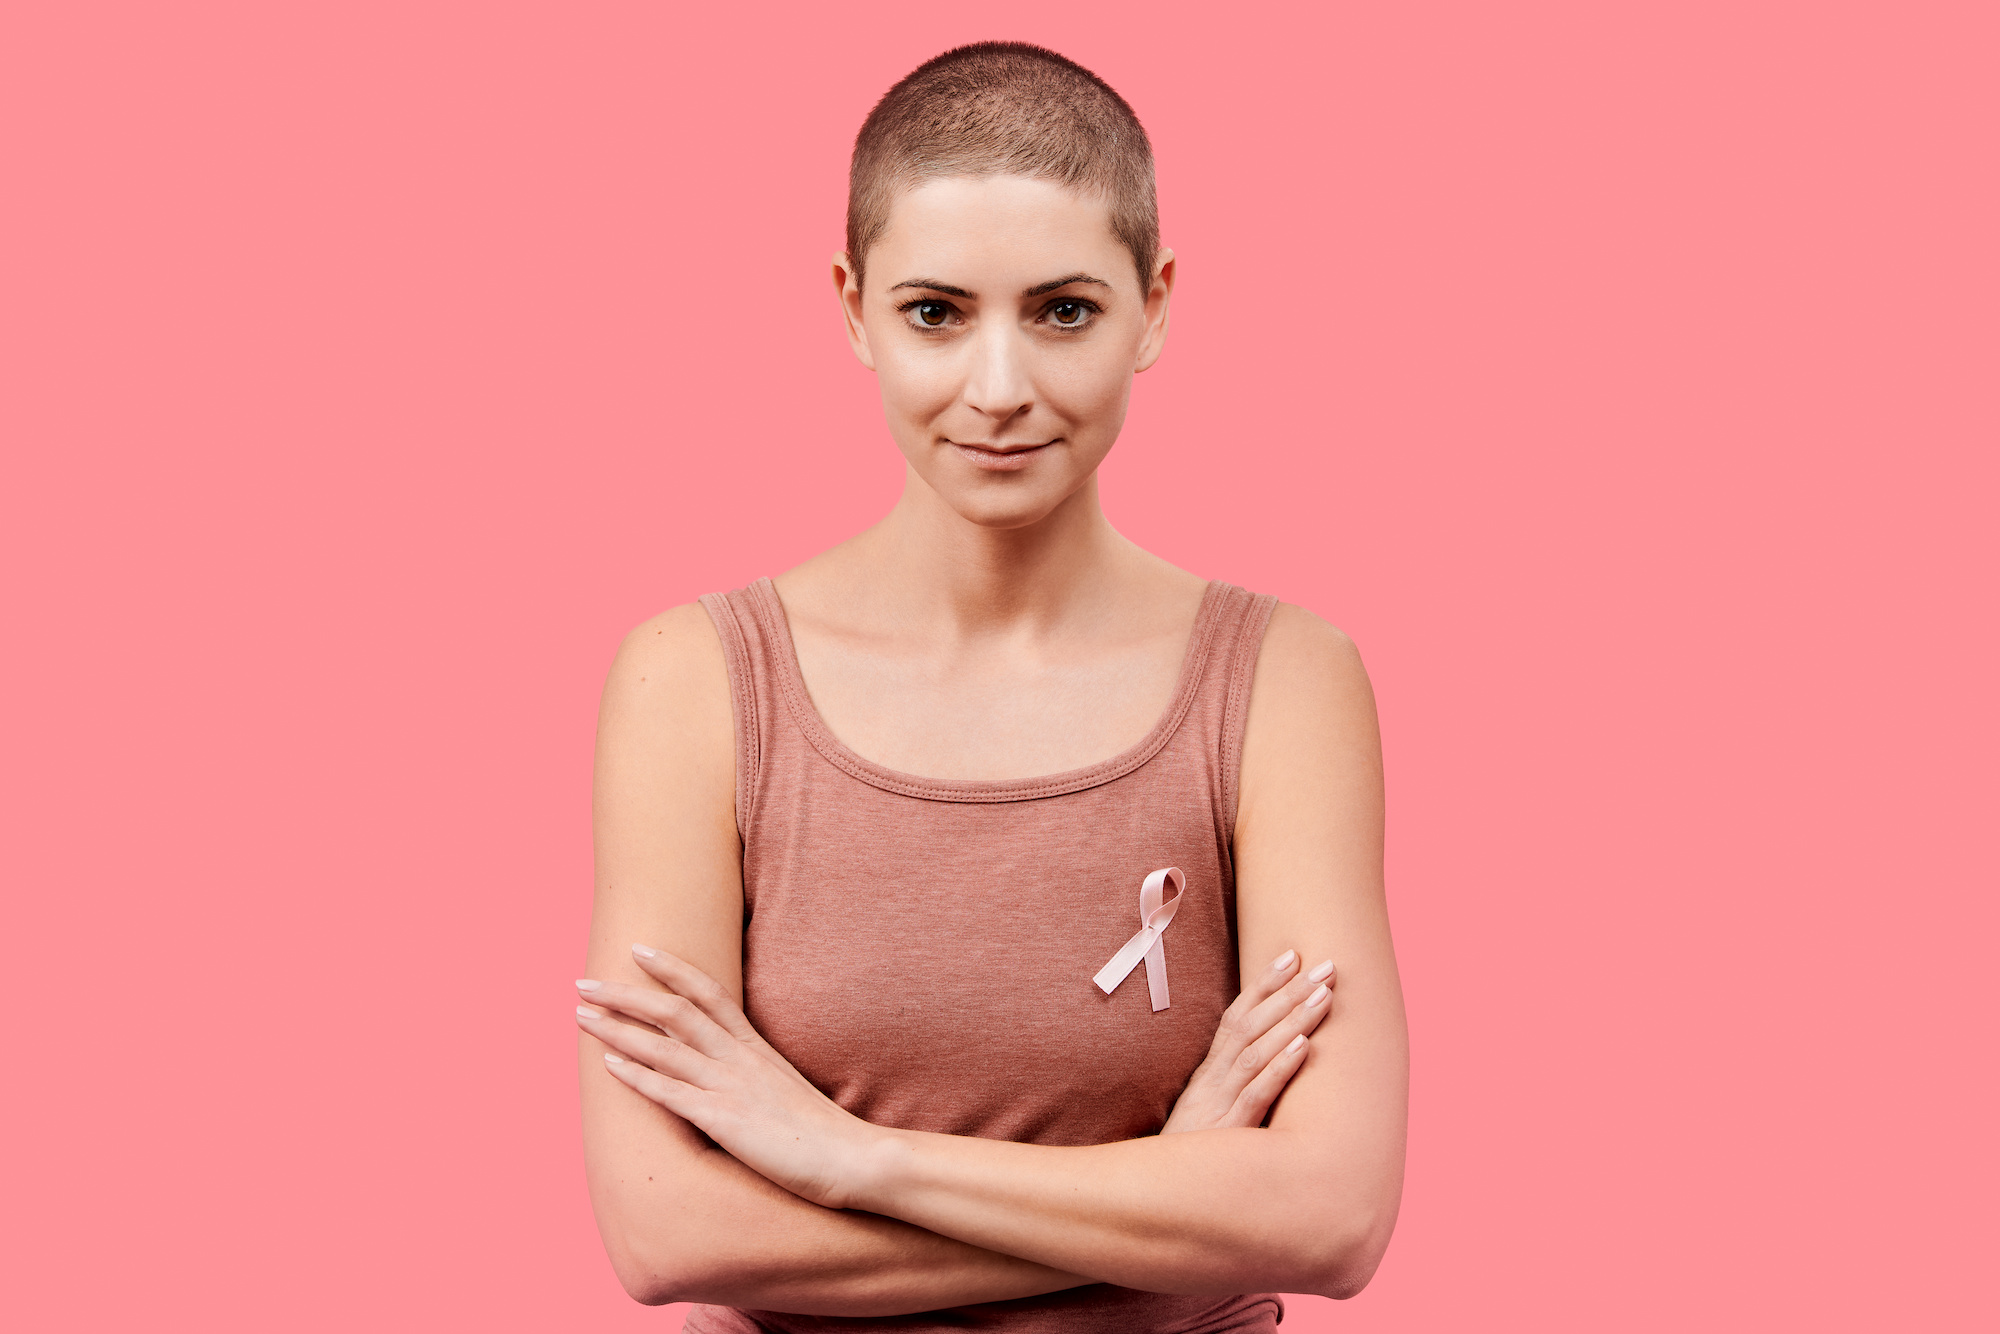 Smiling mid 30s woman, a cancer survivor, wearing pink breast cancer awareness ribbon, isolated over living coral background. Support, solidarity, screening and prevention concept.